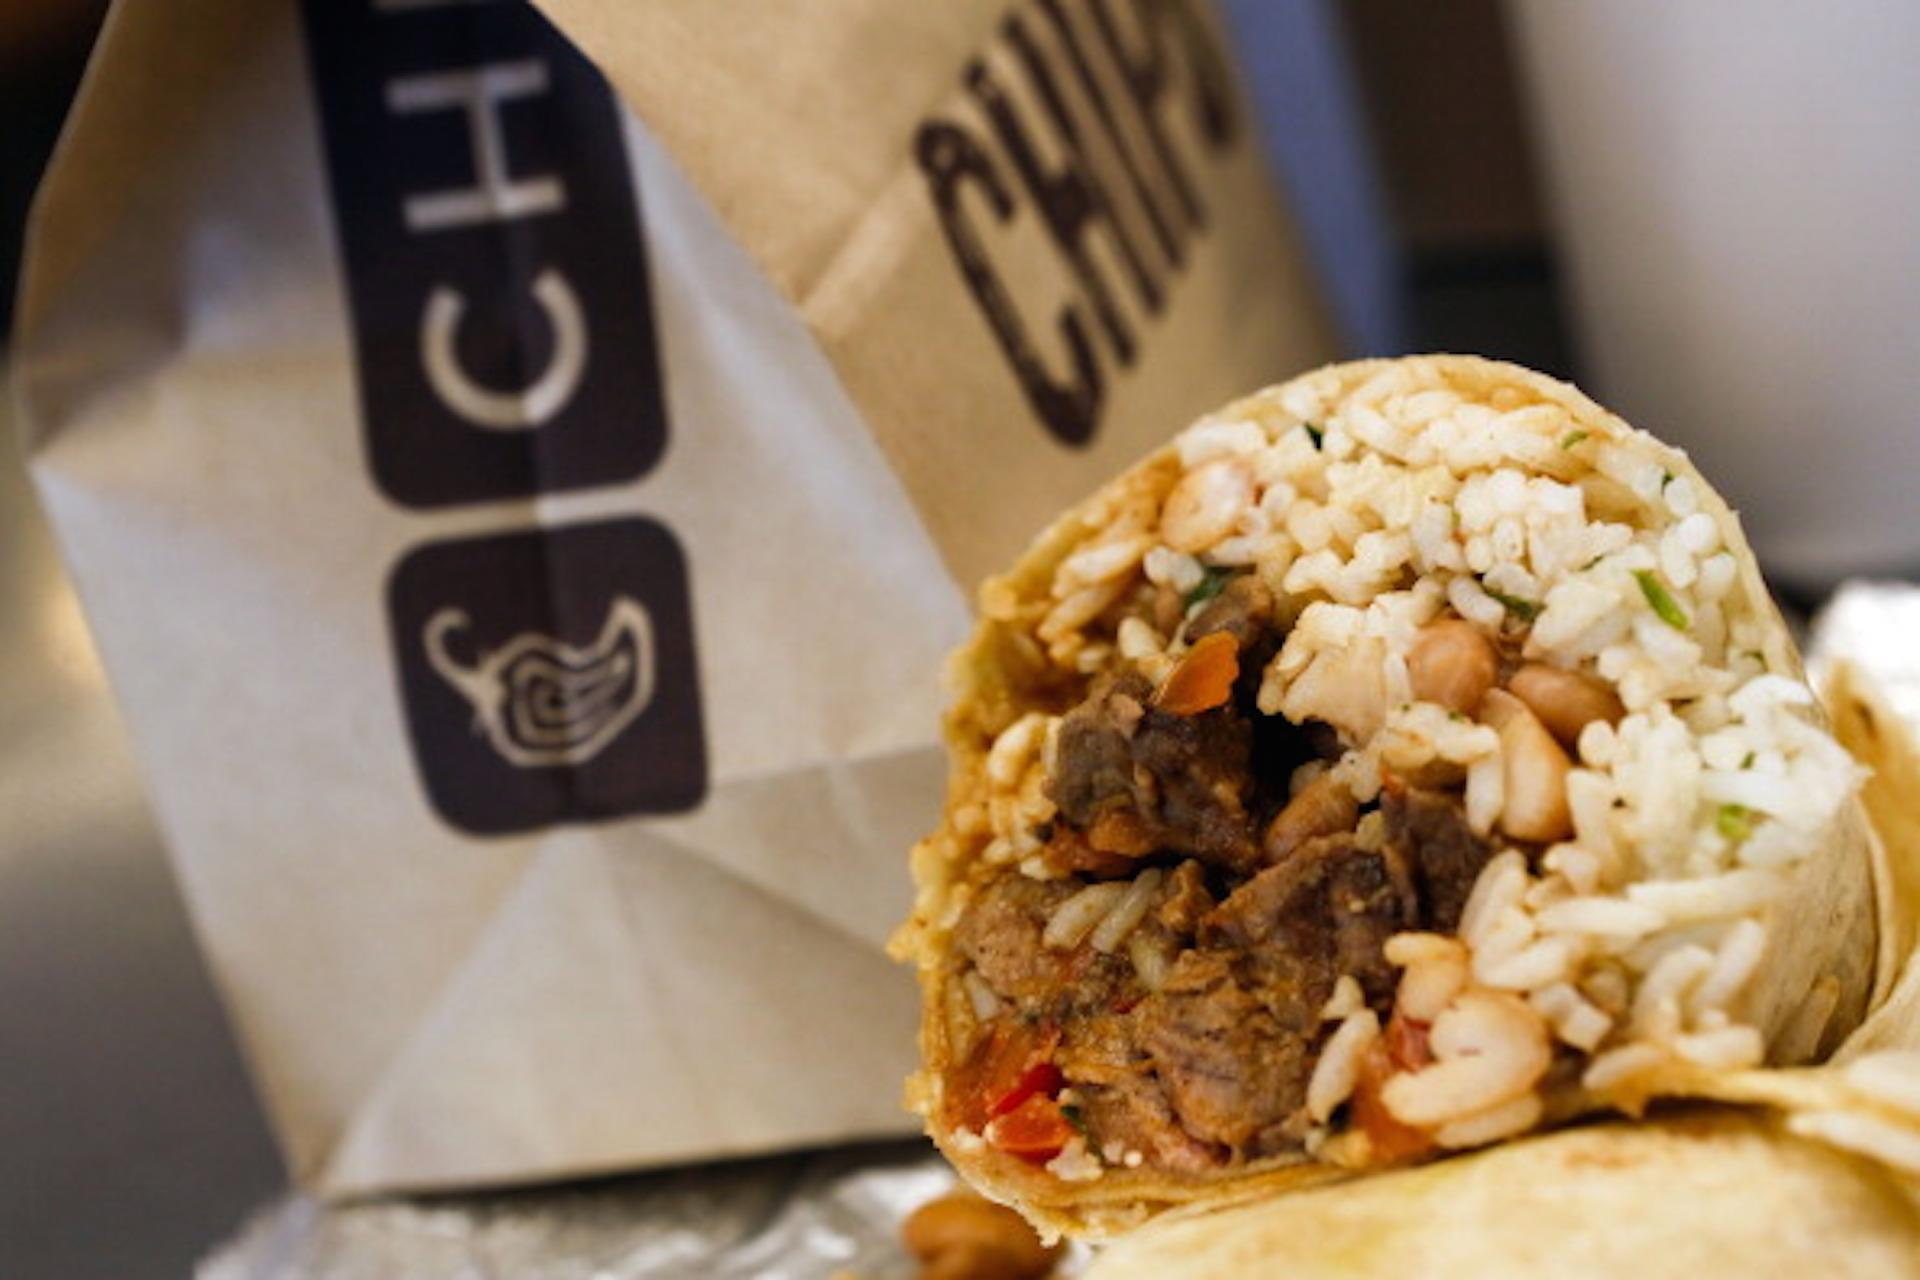 Innocent man terrorized by strangers asking for Chipotle burritos